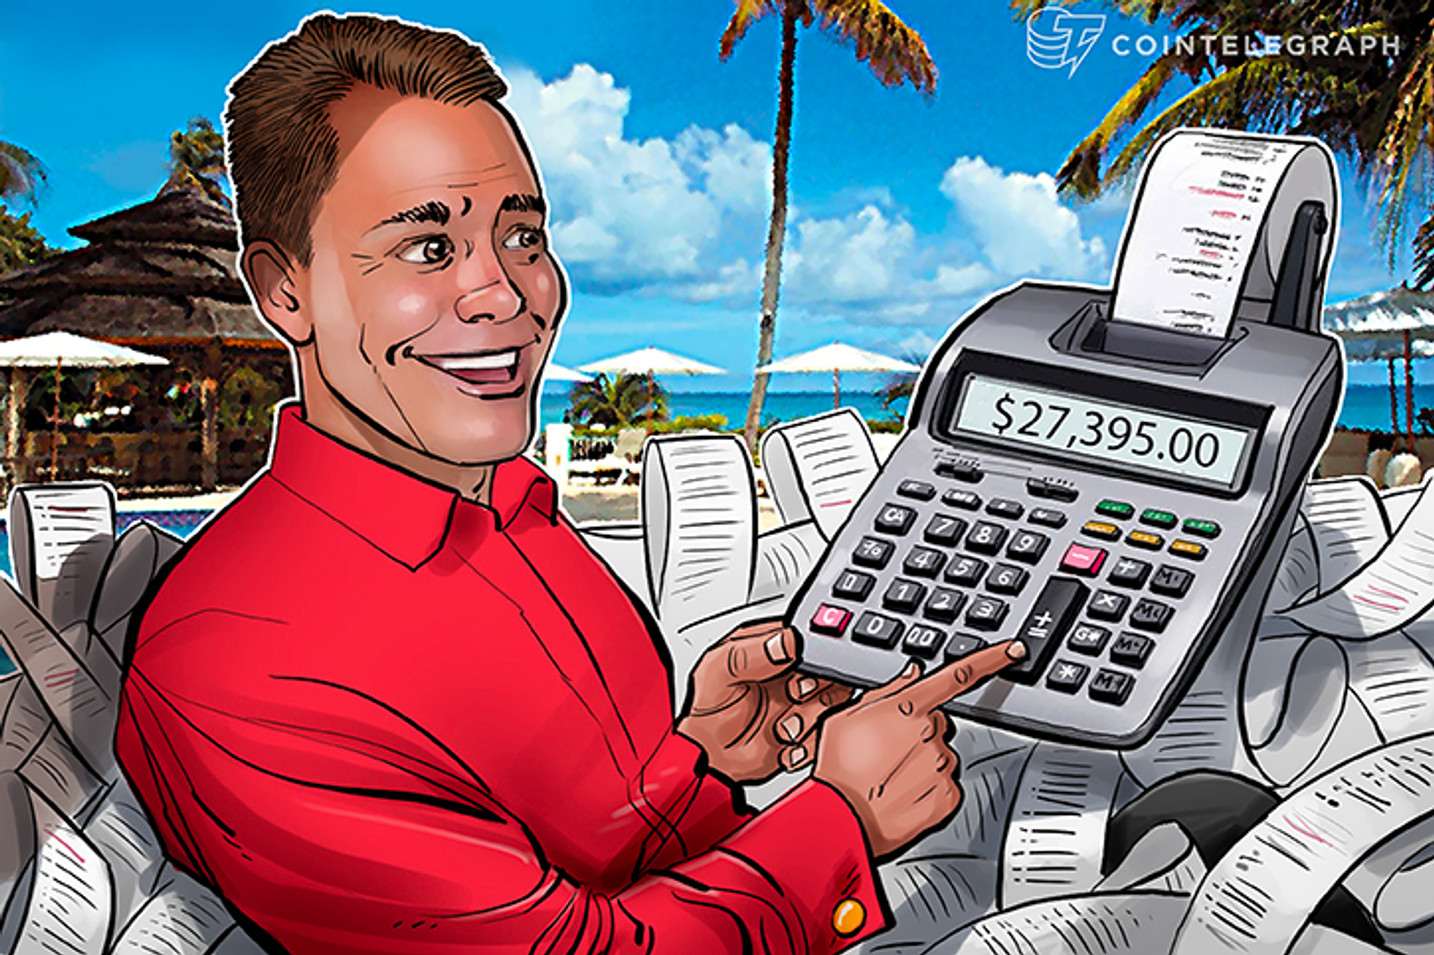 Ultra-Rich Investor Trace Mayer Predicts Bitcoin Price Will Reach $27,395 in Just Four Months